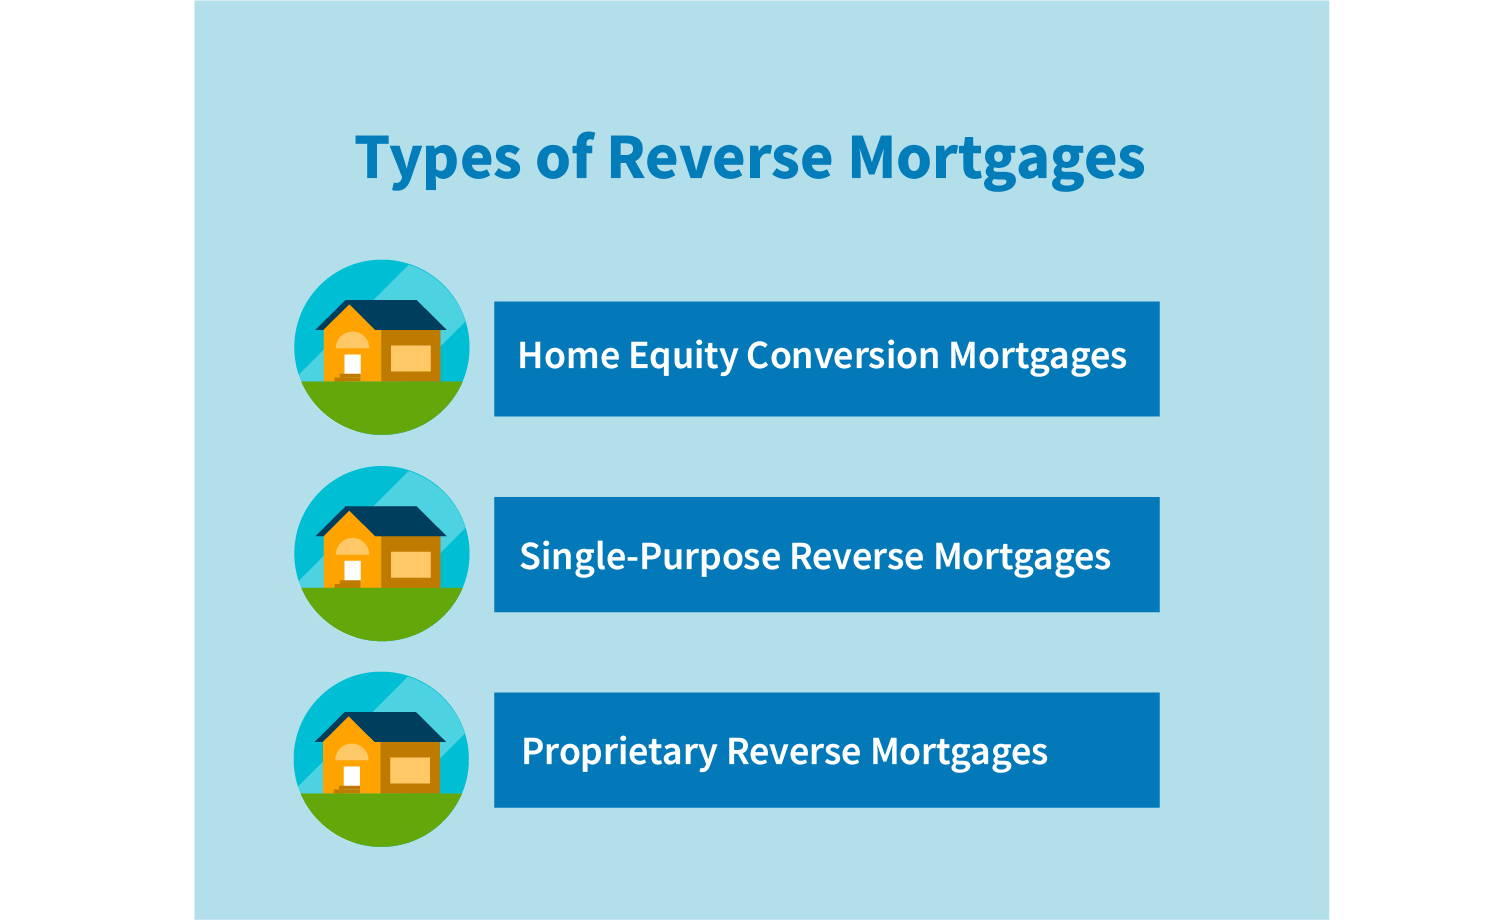 Types of reverse mortgages: home equity conversion mortgages, single-purpose reverse mortgages and proprietary reverse mortgages.